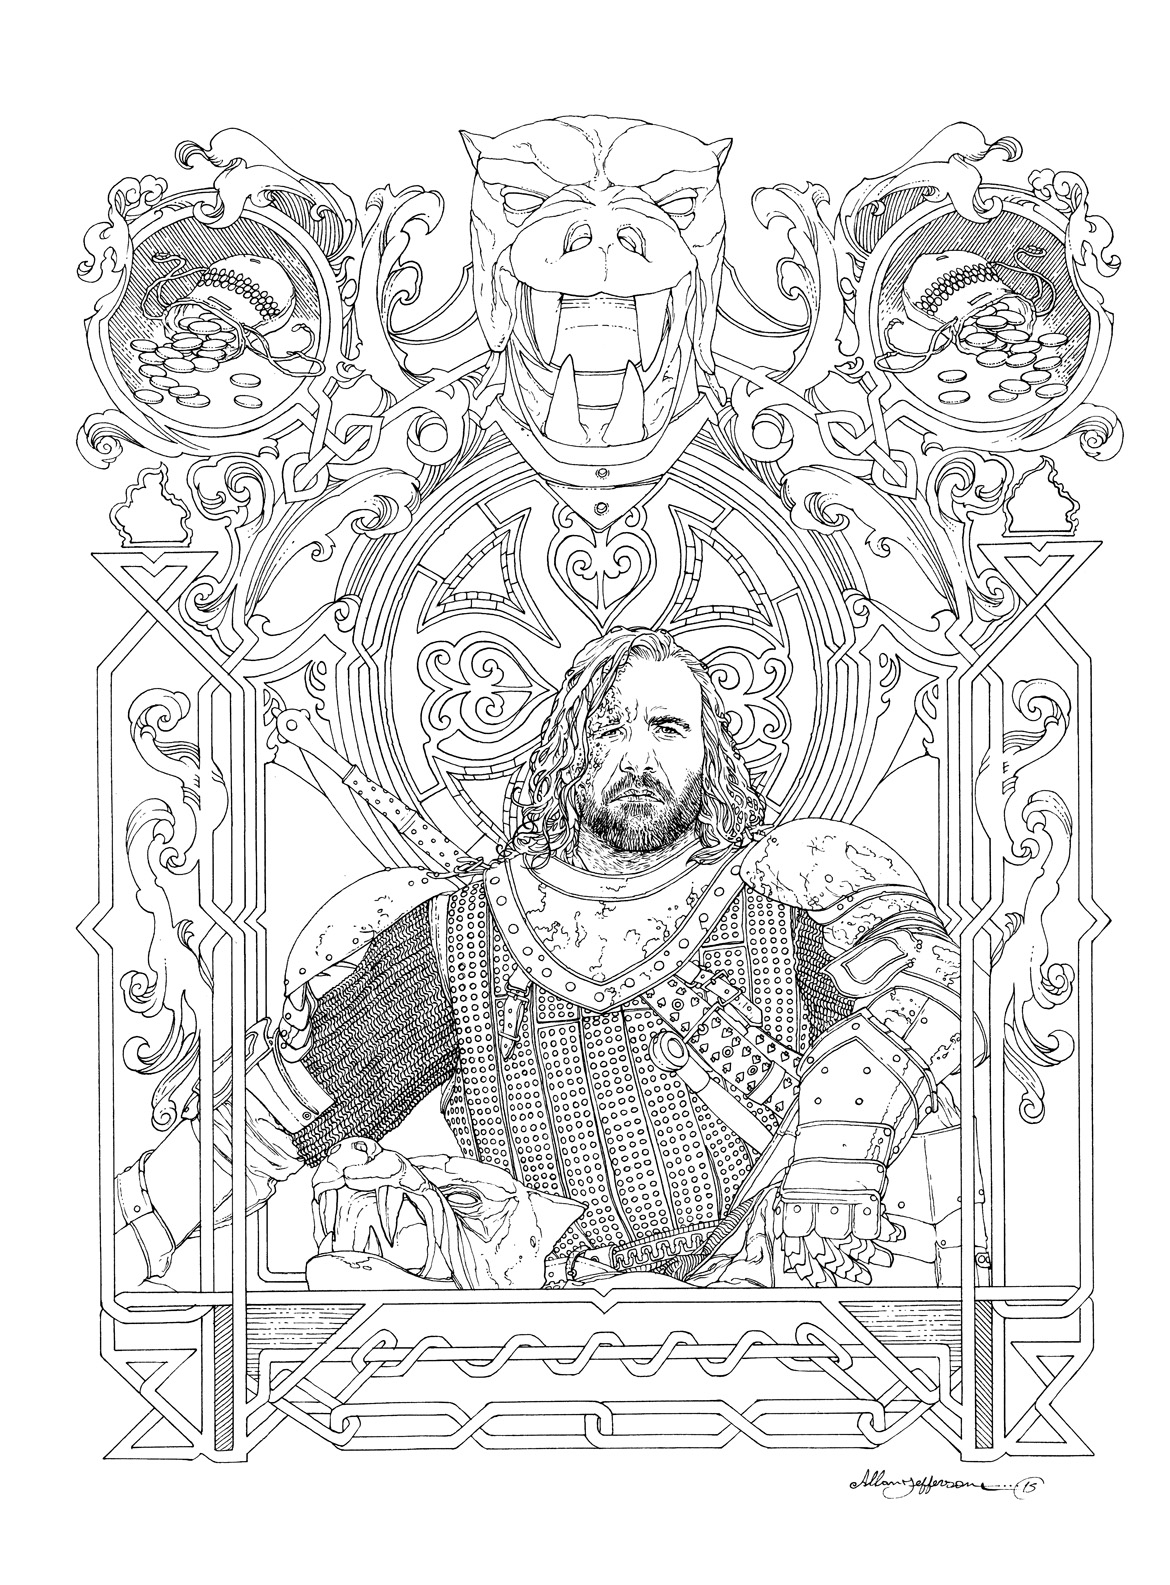 Game Of Thrones The Hound Illo Allan Jeff In Chiaroscuro Studios S Commissions By Allan Jeff List Now Open Comic Art Gallery Room